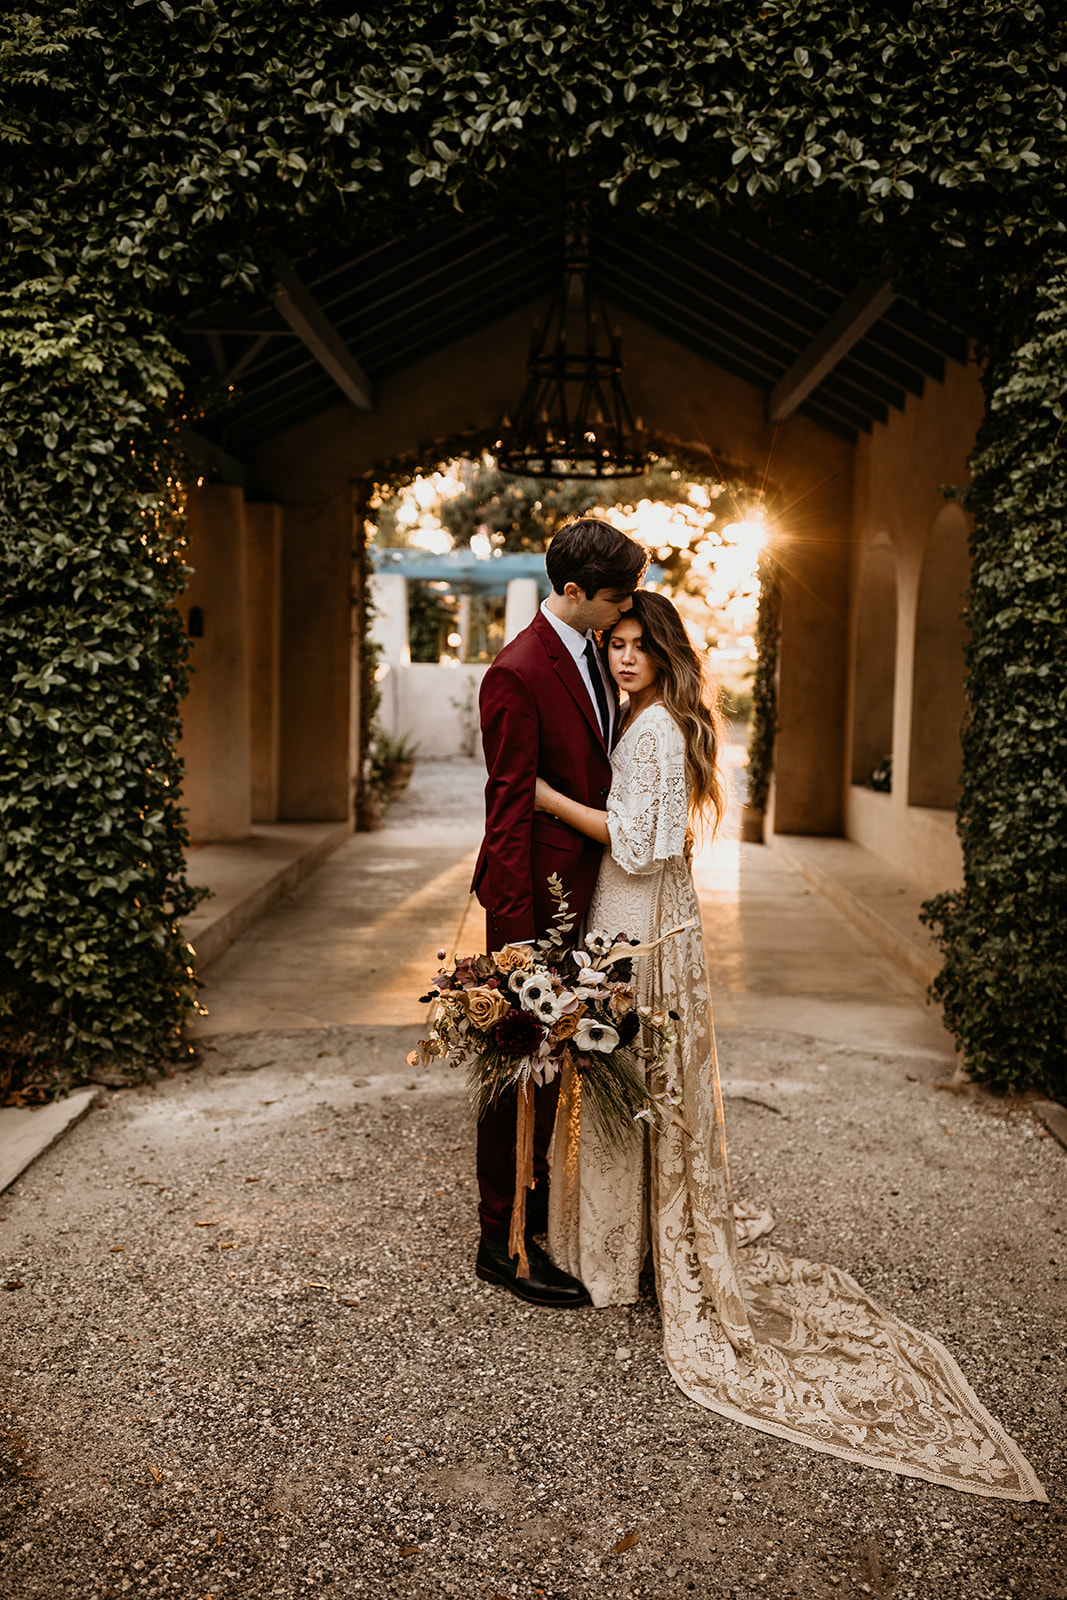 SydonieMansionWedding-11.jpg